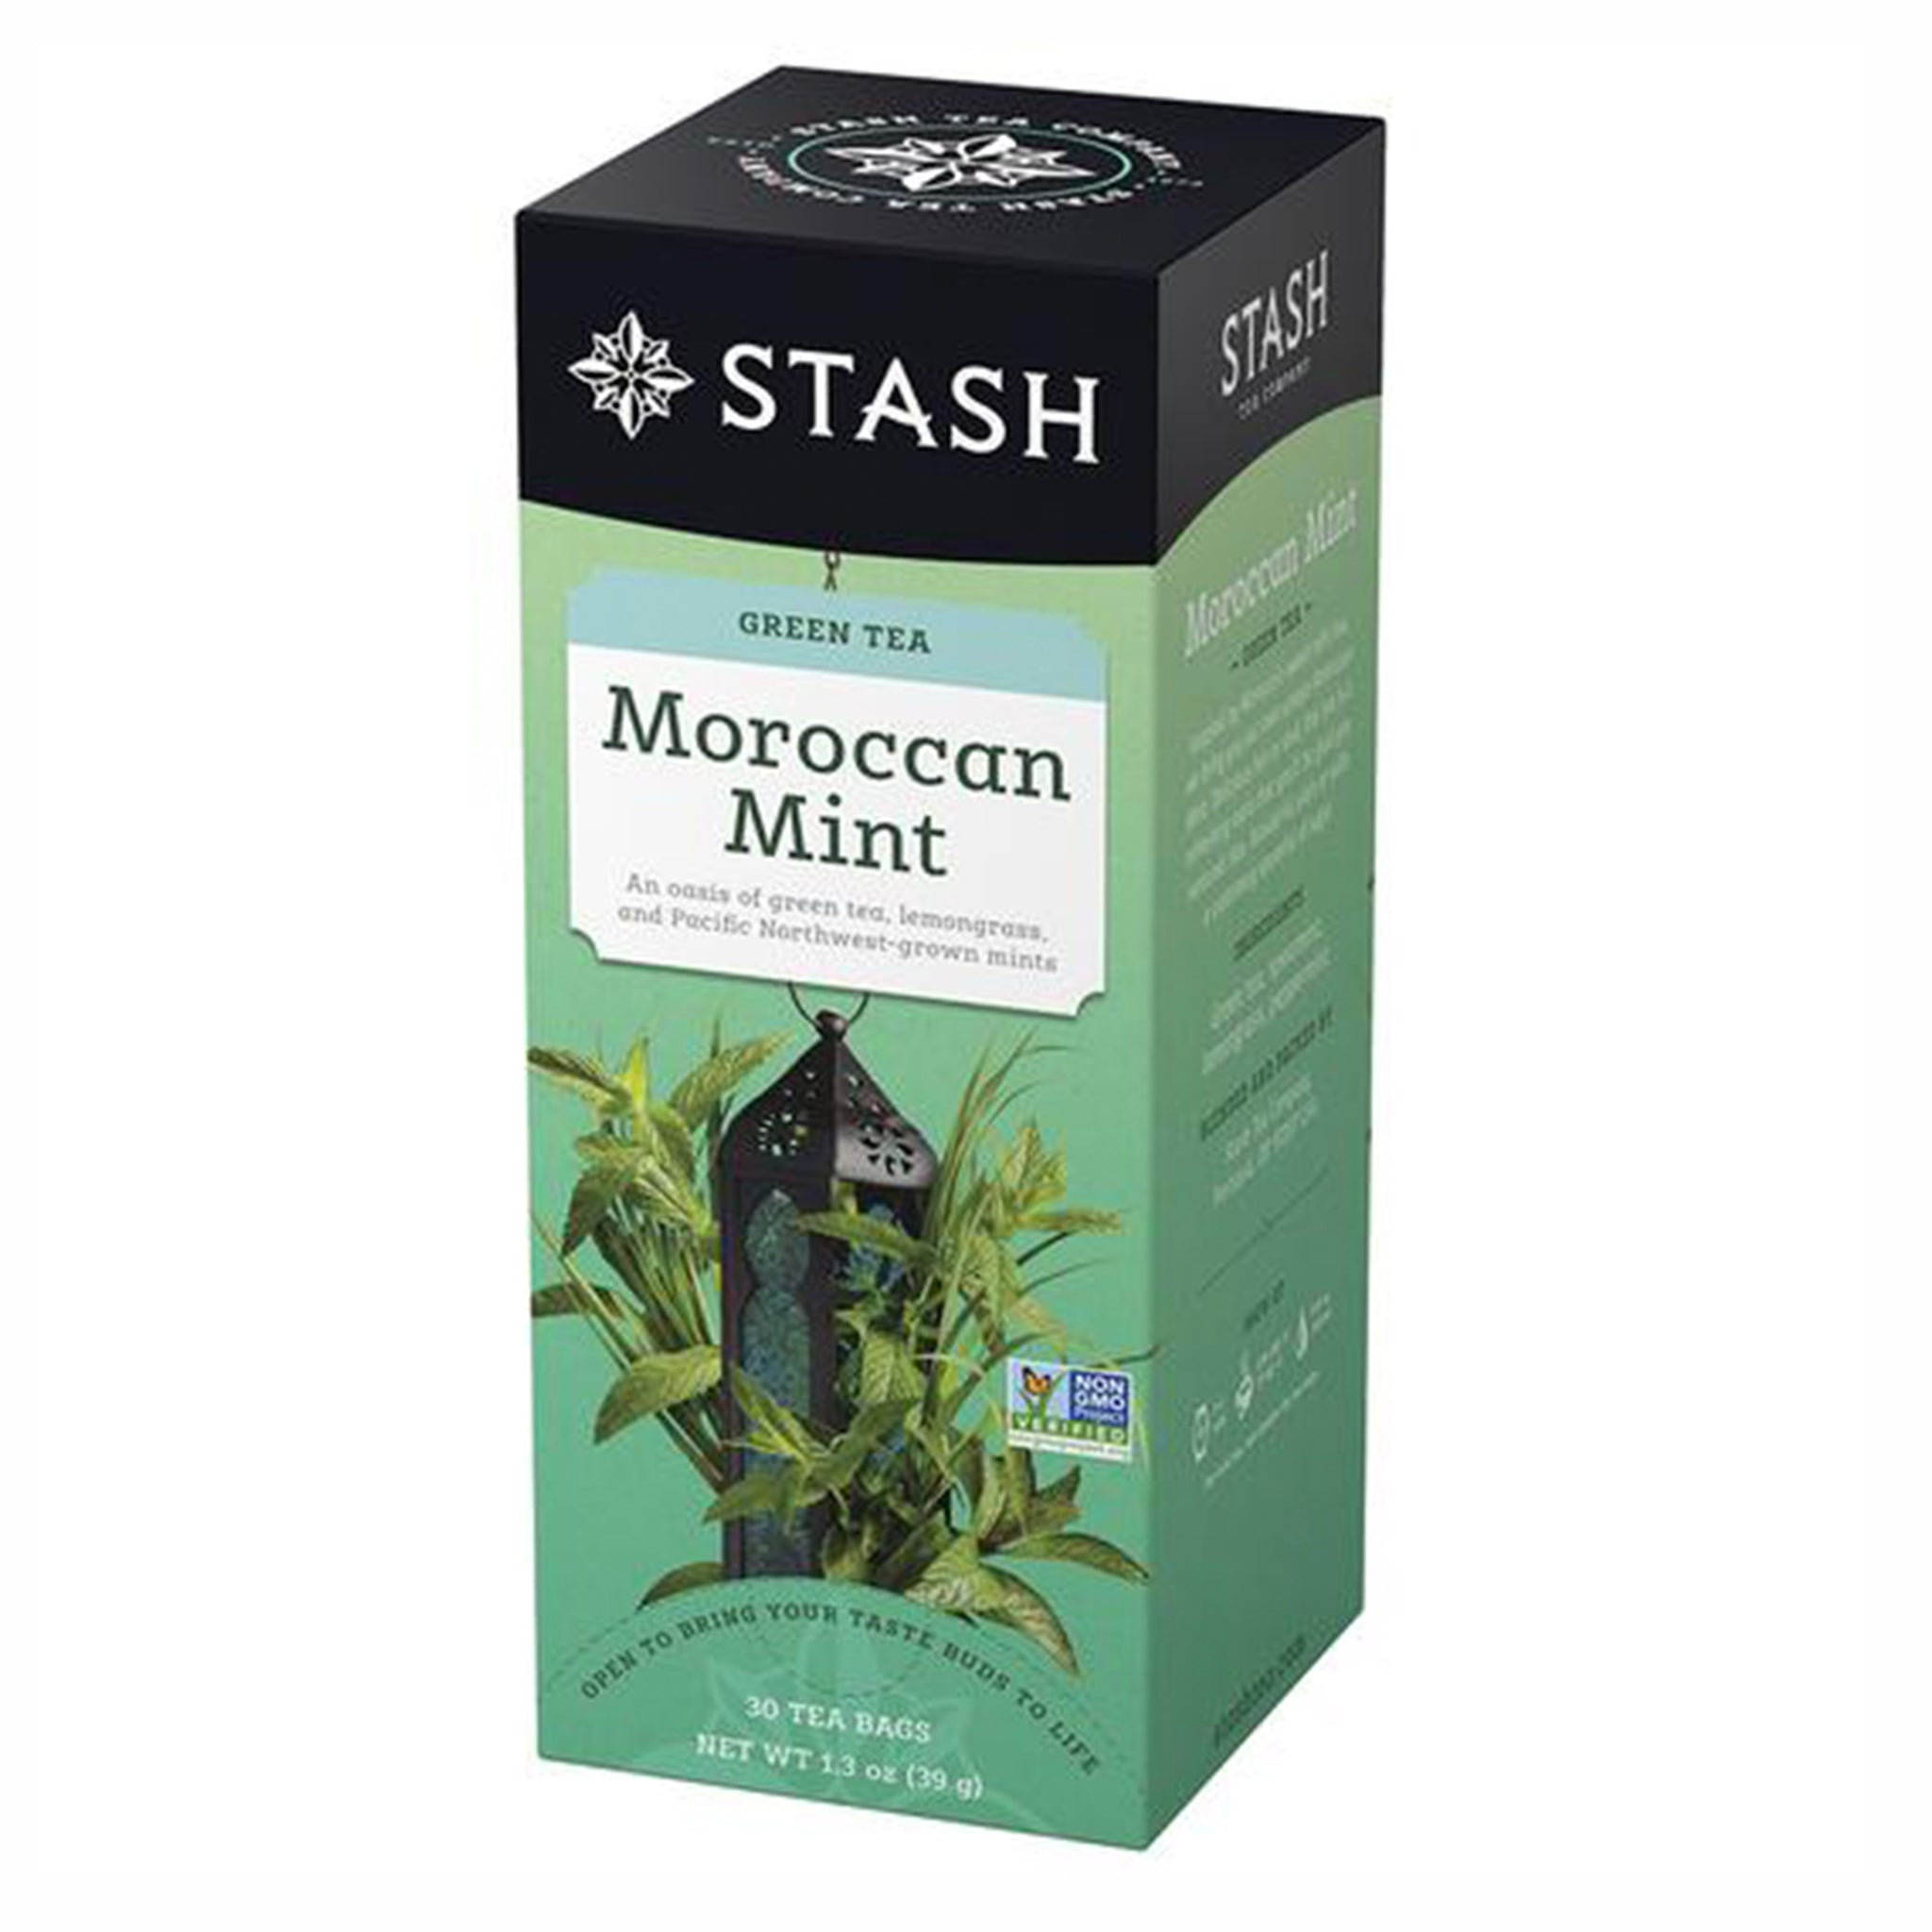 Stash Moroccan Mint Green, 30 Tea Bags